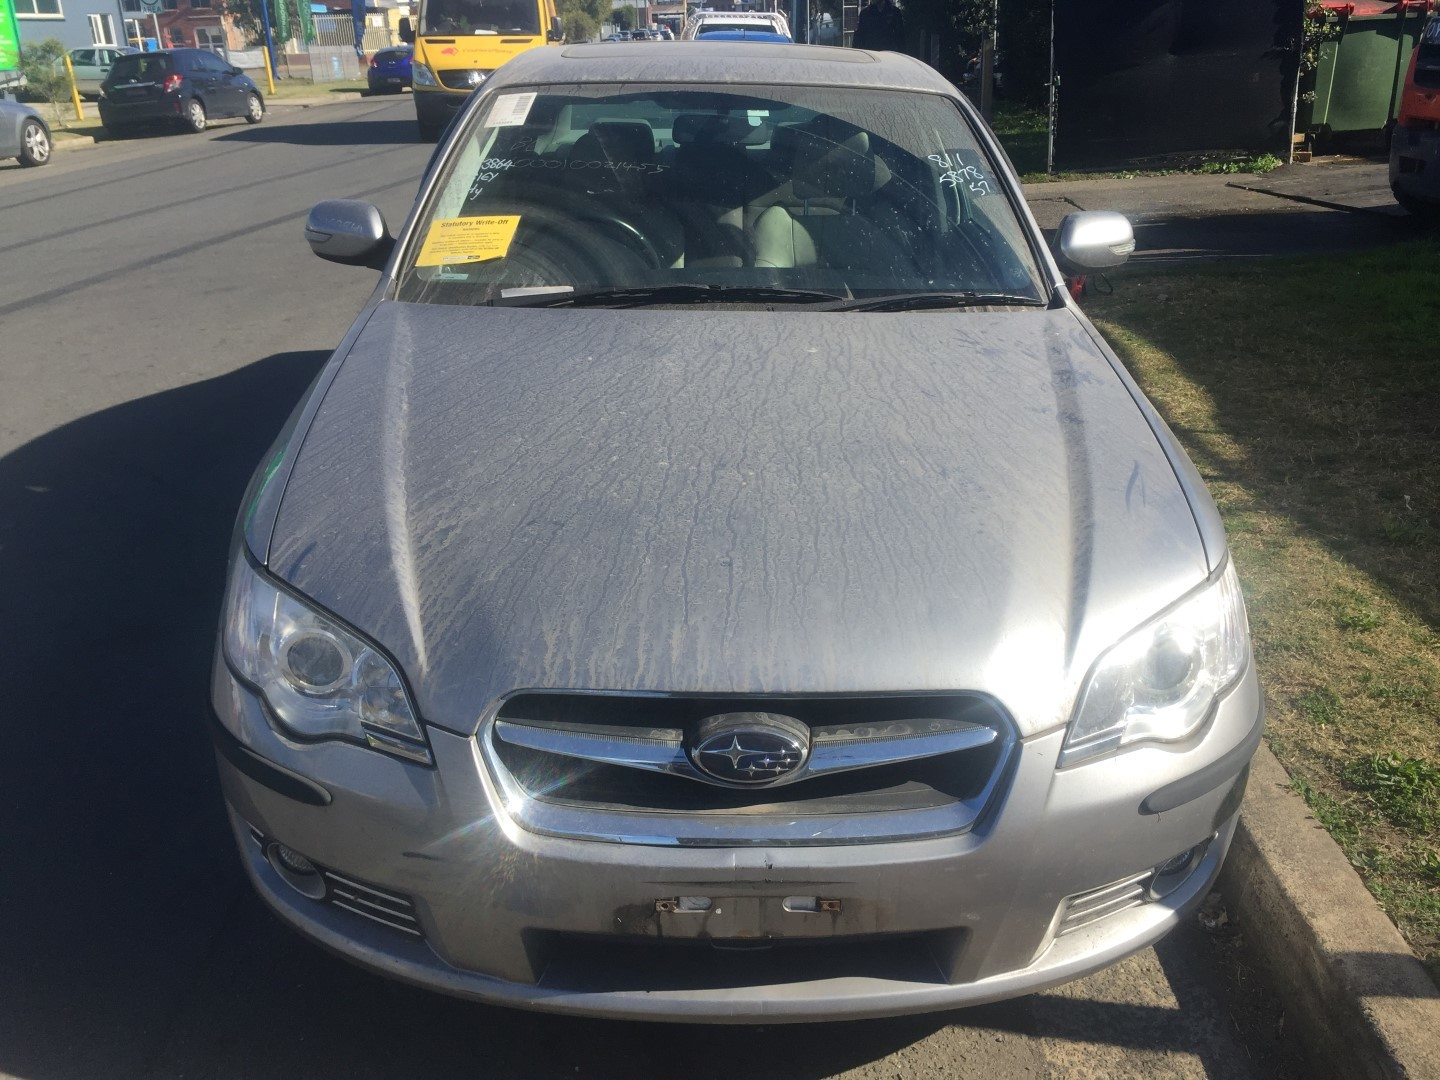 Subaru Wrecking Liberty 2008 EZ30 H6 Automatic Sedan Spare Parts